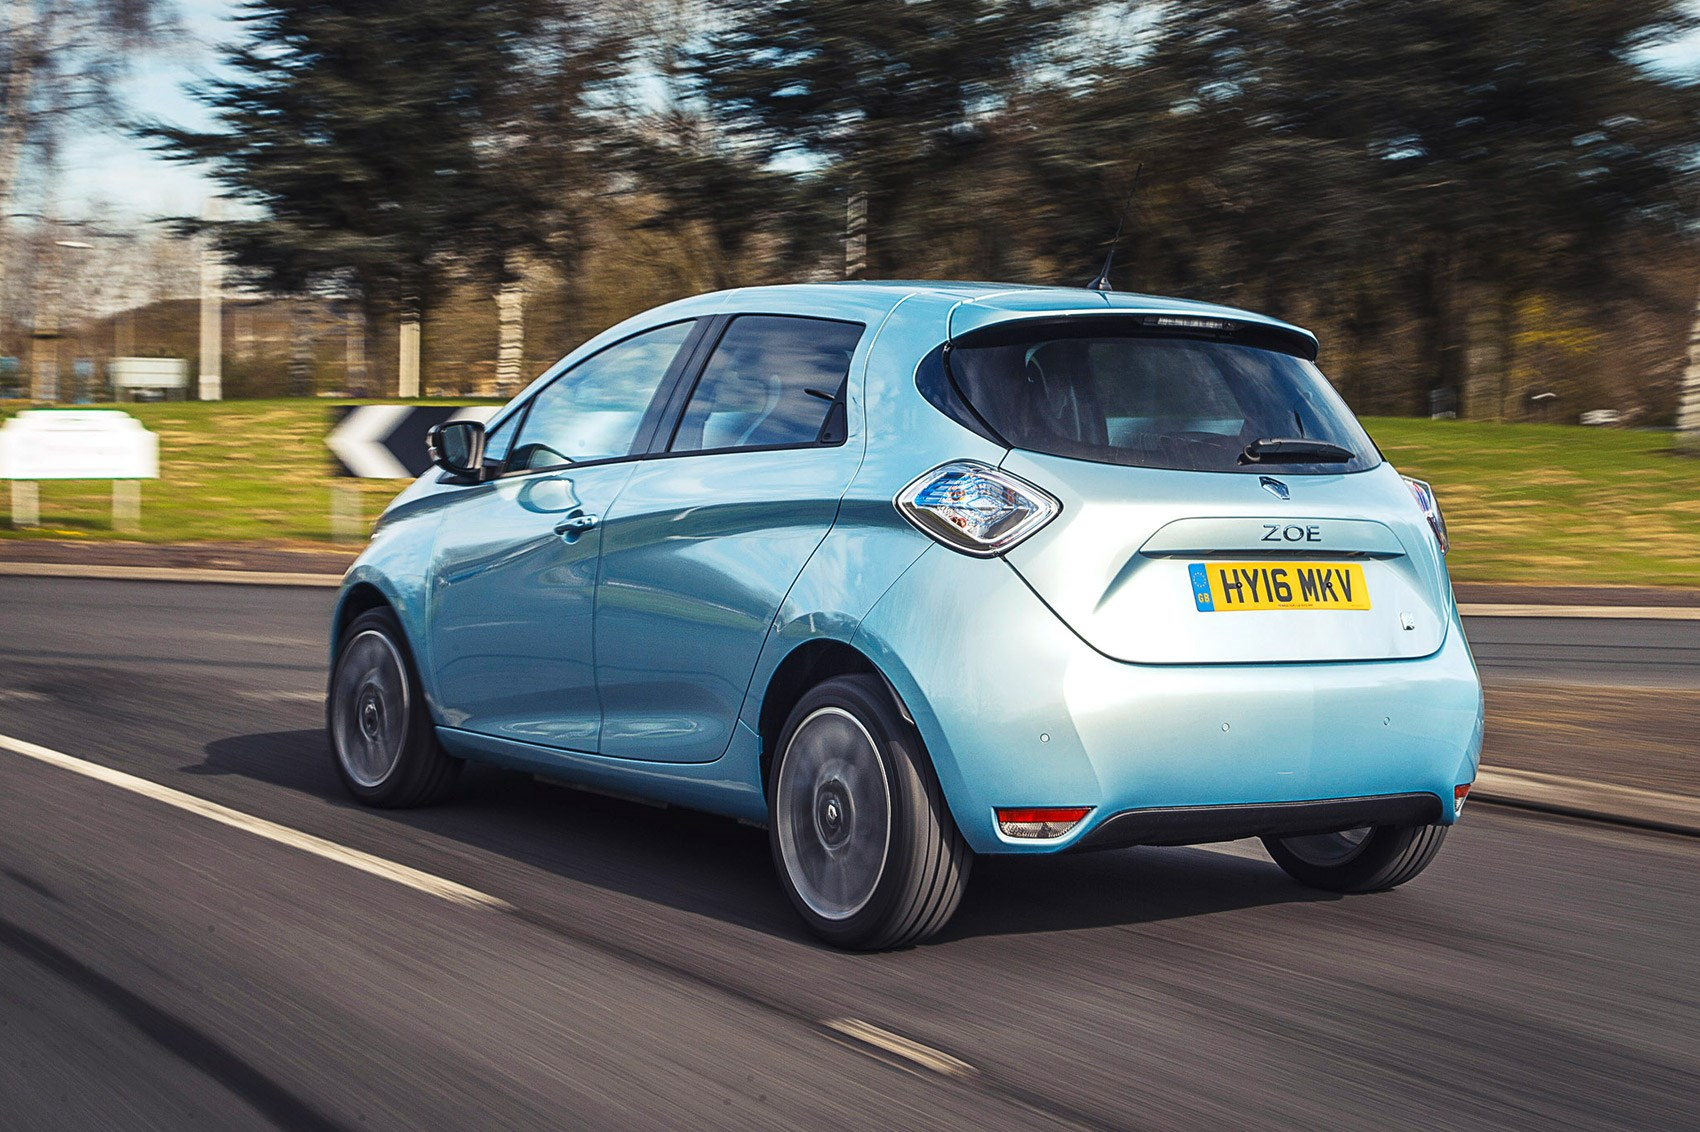 Best Electric Cars 2018 Uk Our Pick Of The Evs You Can Buy Ev Range Extending Adding A 2nd Hv Battery Car Magazine